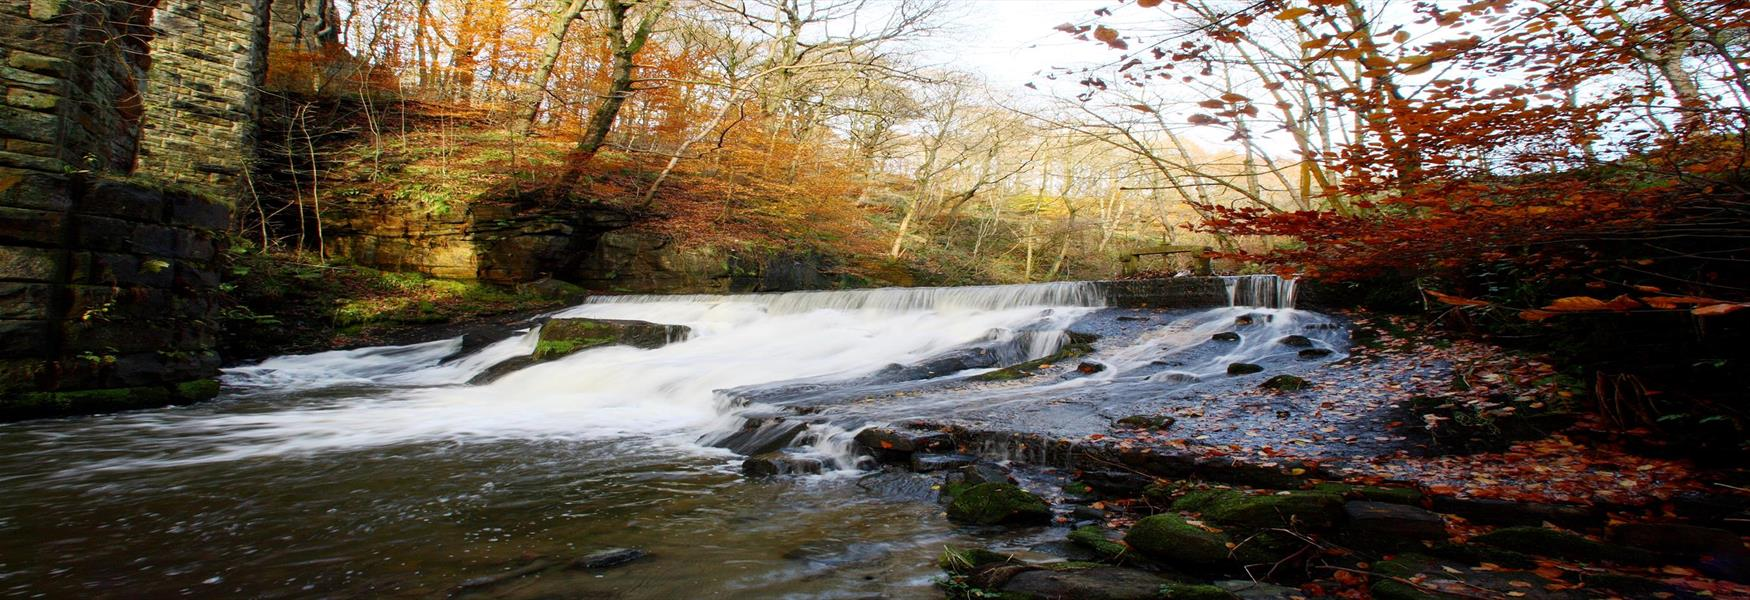 A weir with rushing water at Healey Dell.